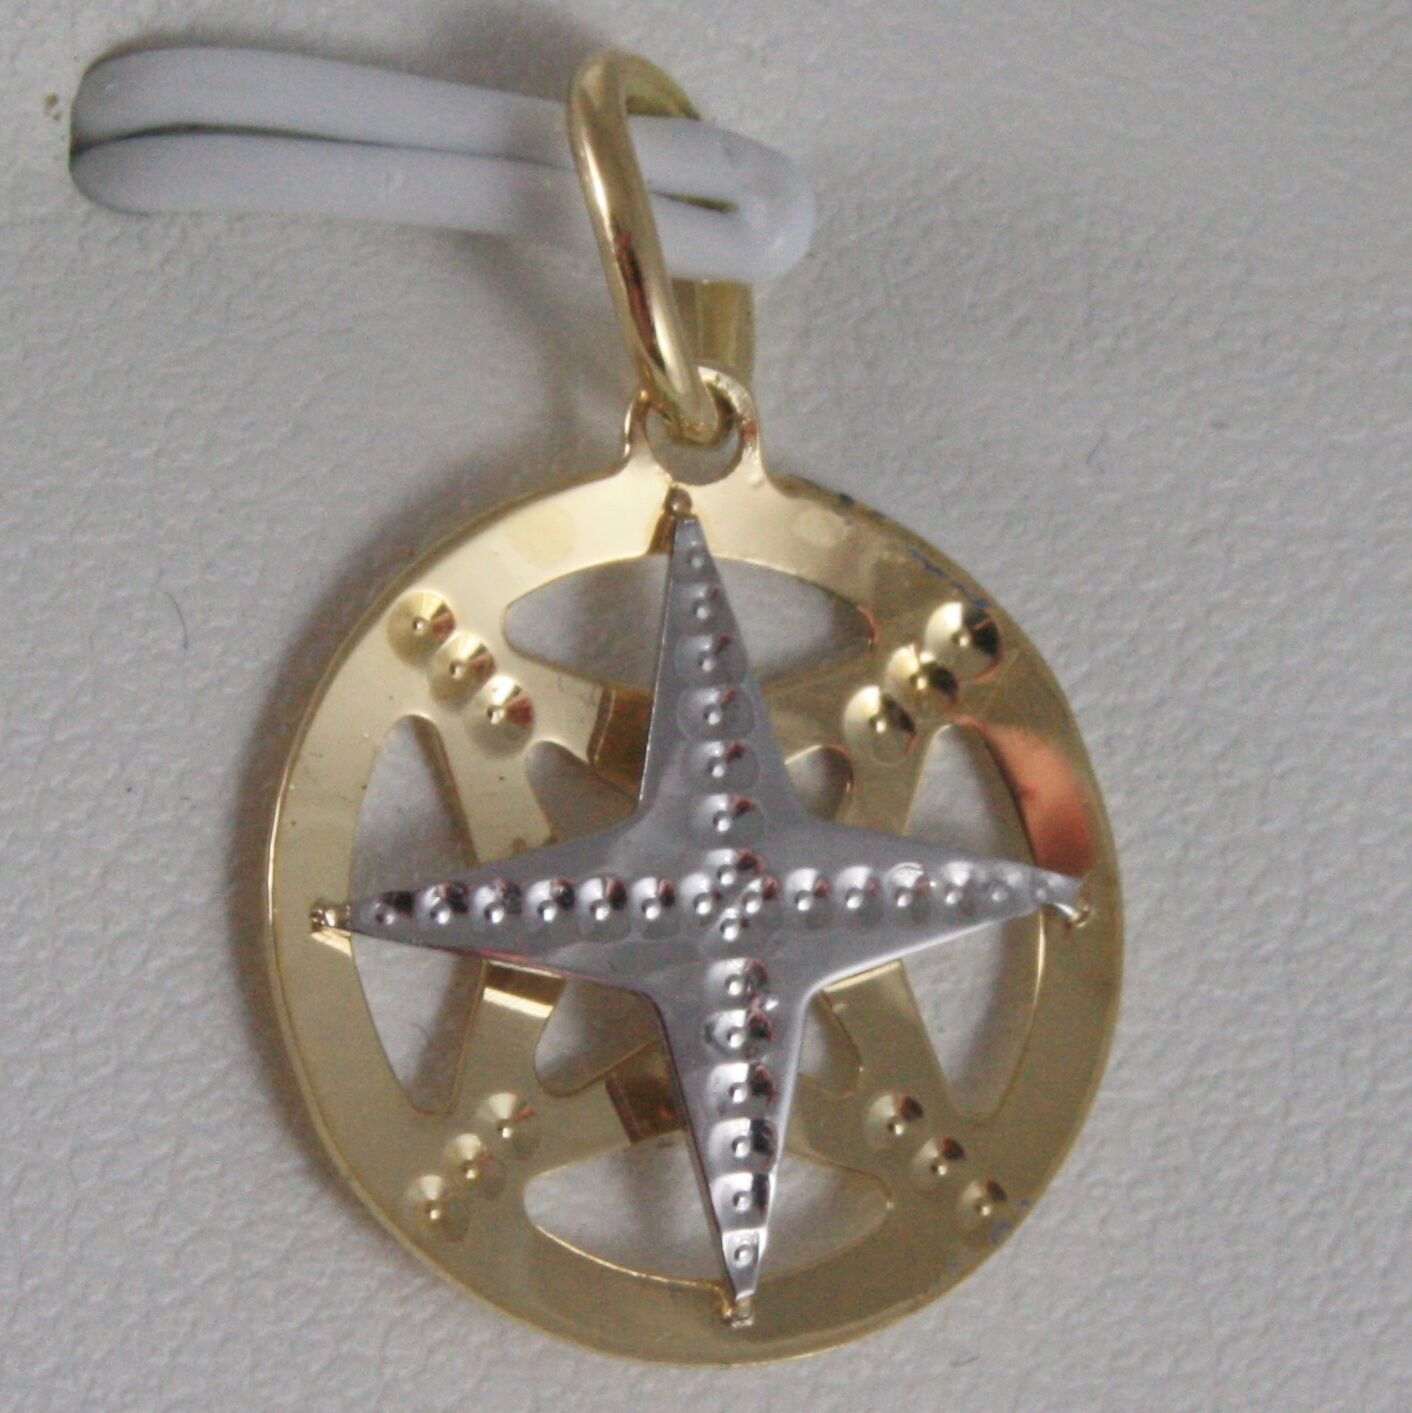 SOLID 18K WHITE & YELLOW GOLD WIND ROSE, COMPASS CHARM, PENDANT MADE IN ITALY